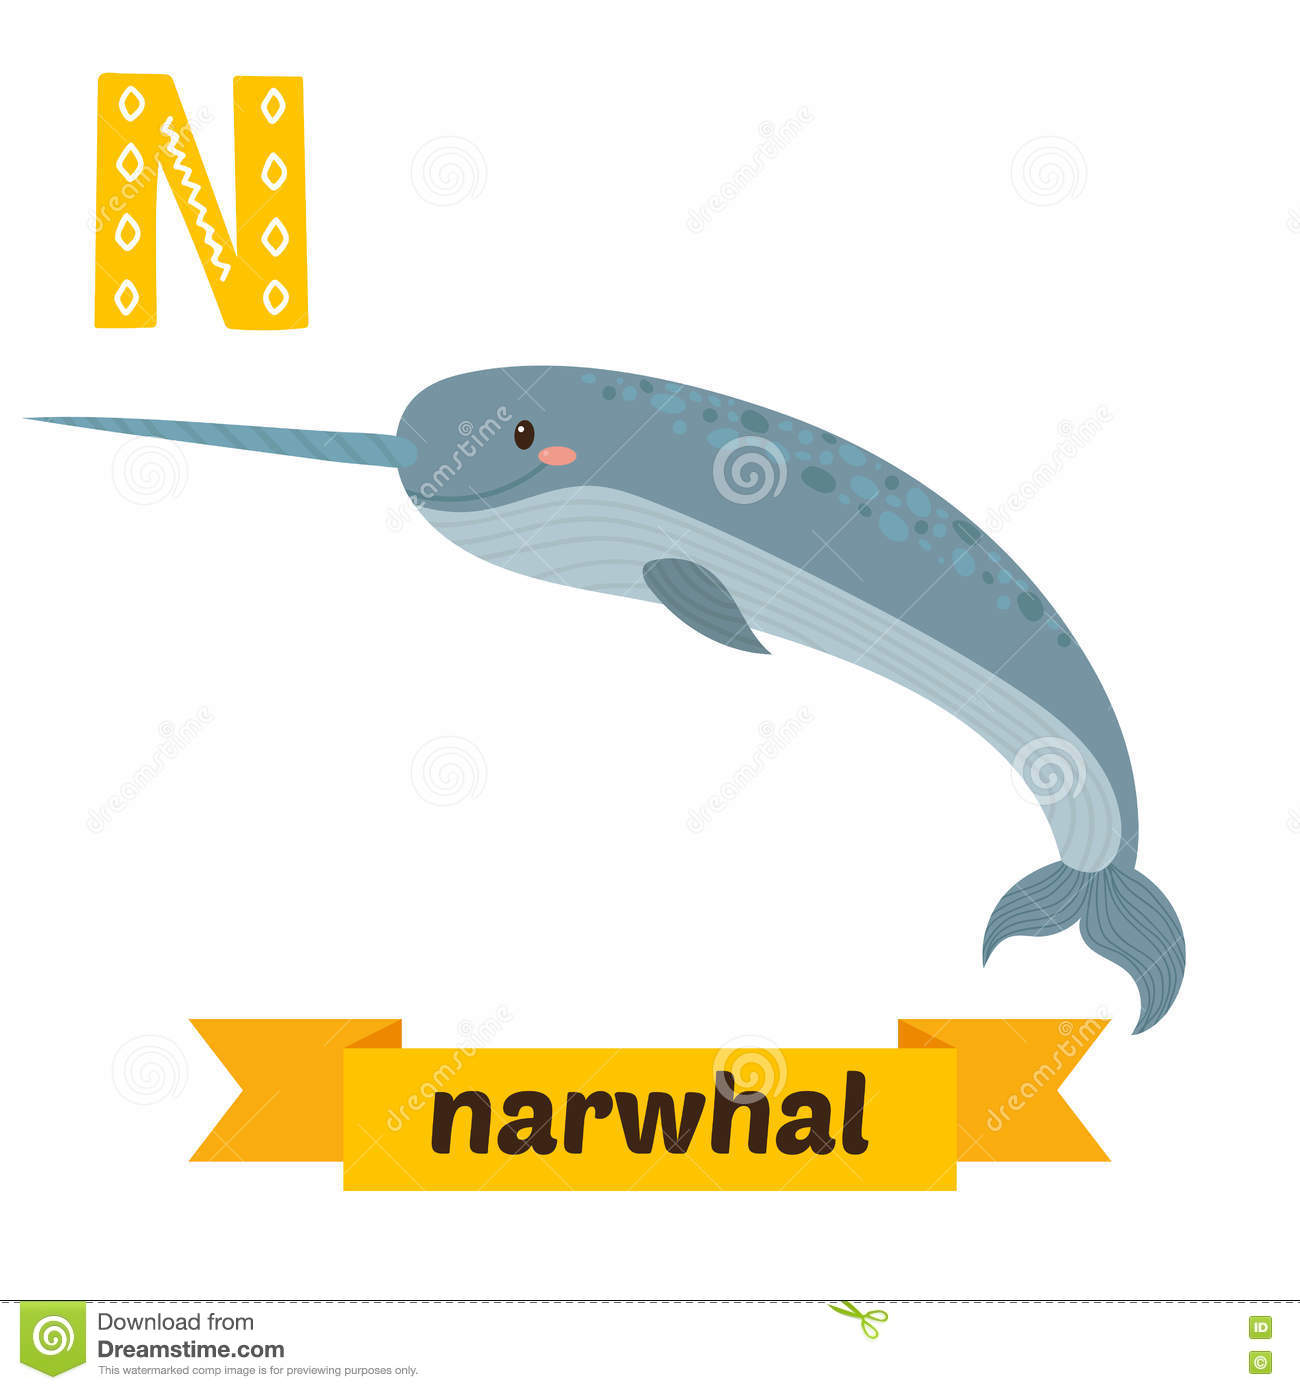 Narwhal and unicorn cartoon narwhal jokes funny pictures - Narwhal N Letter Cute Children Animal Alphabet In Vector Narwhal N Lett